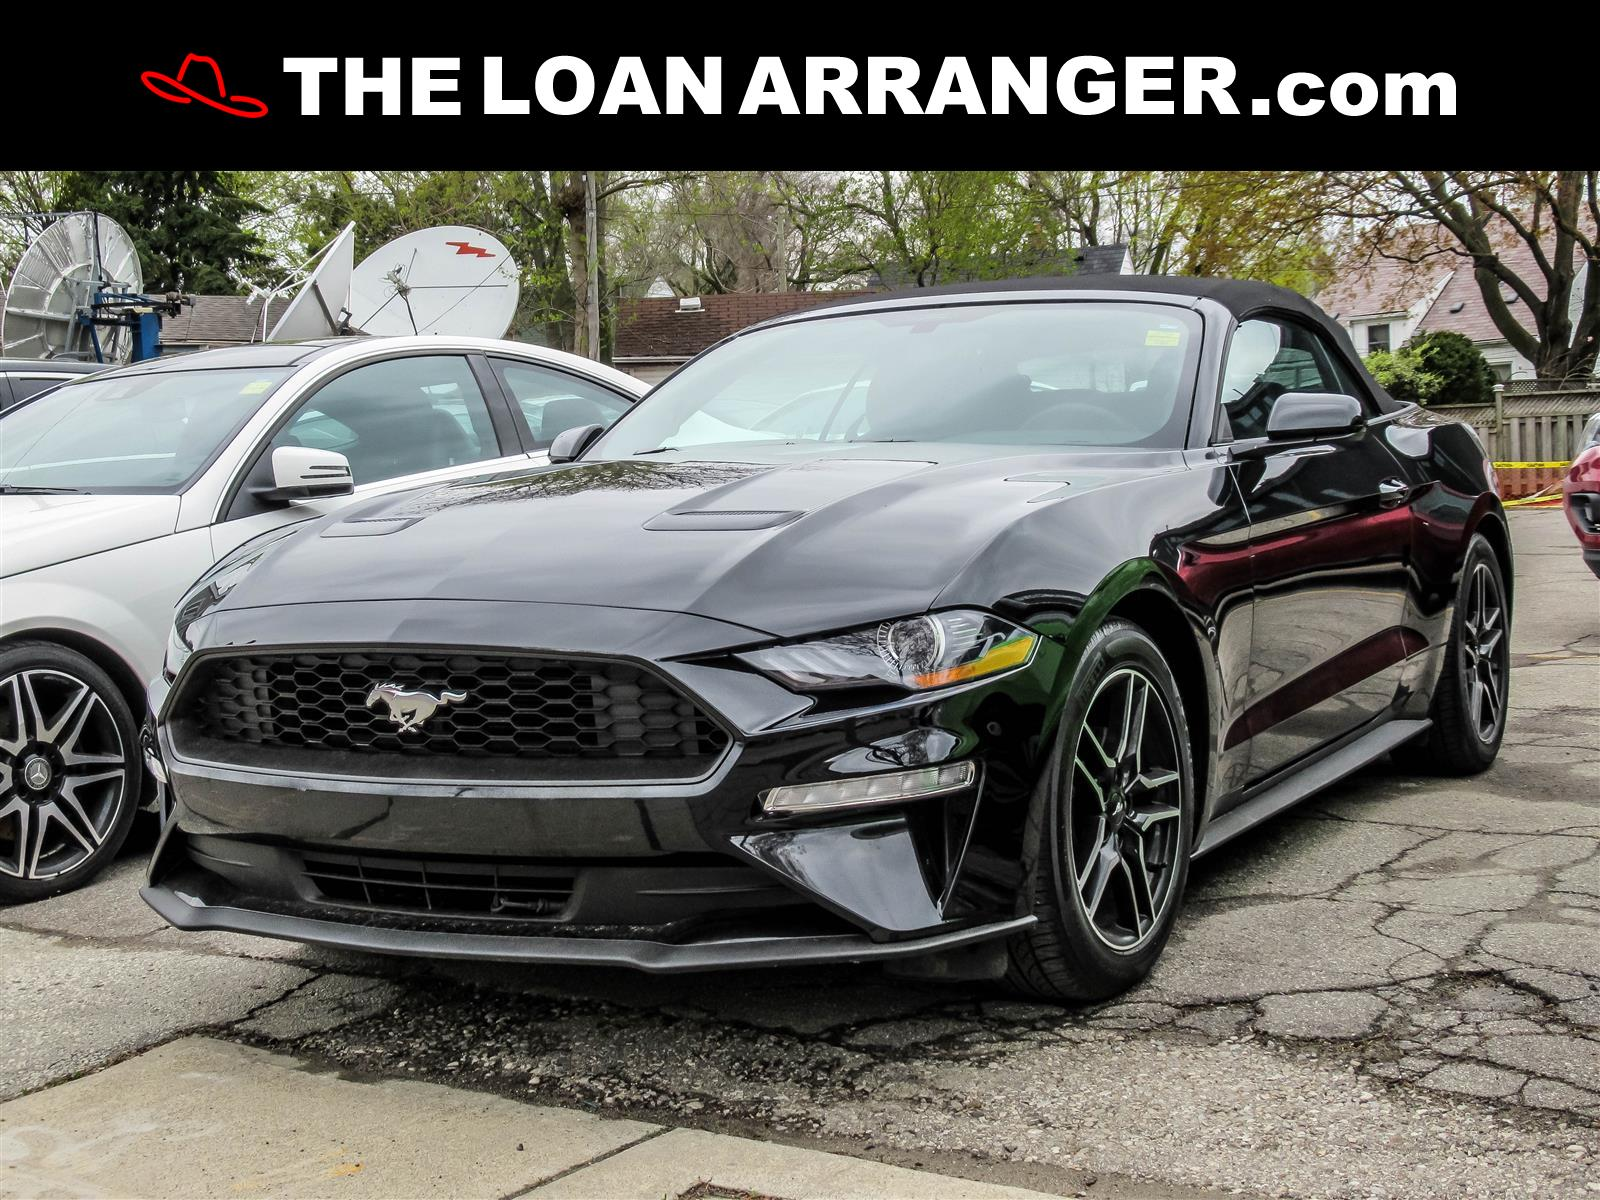 used 2018 Ford Mustang car